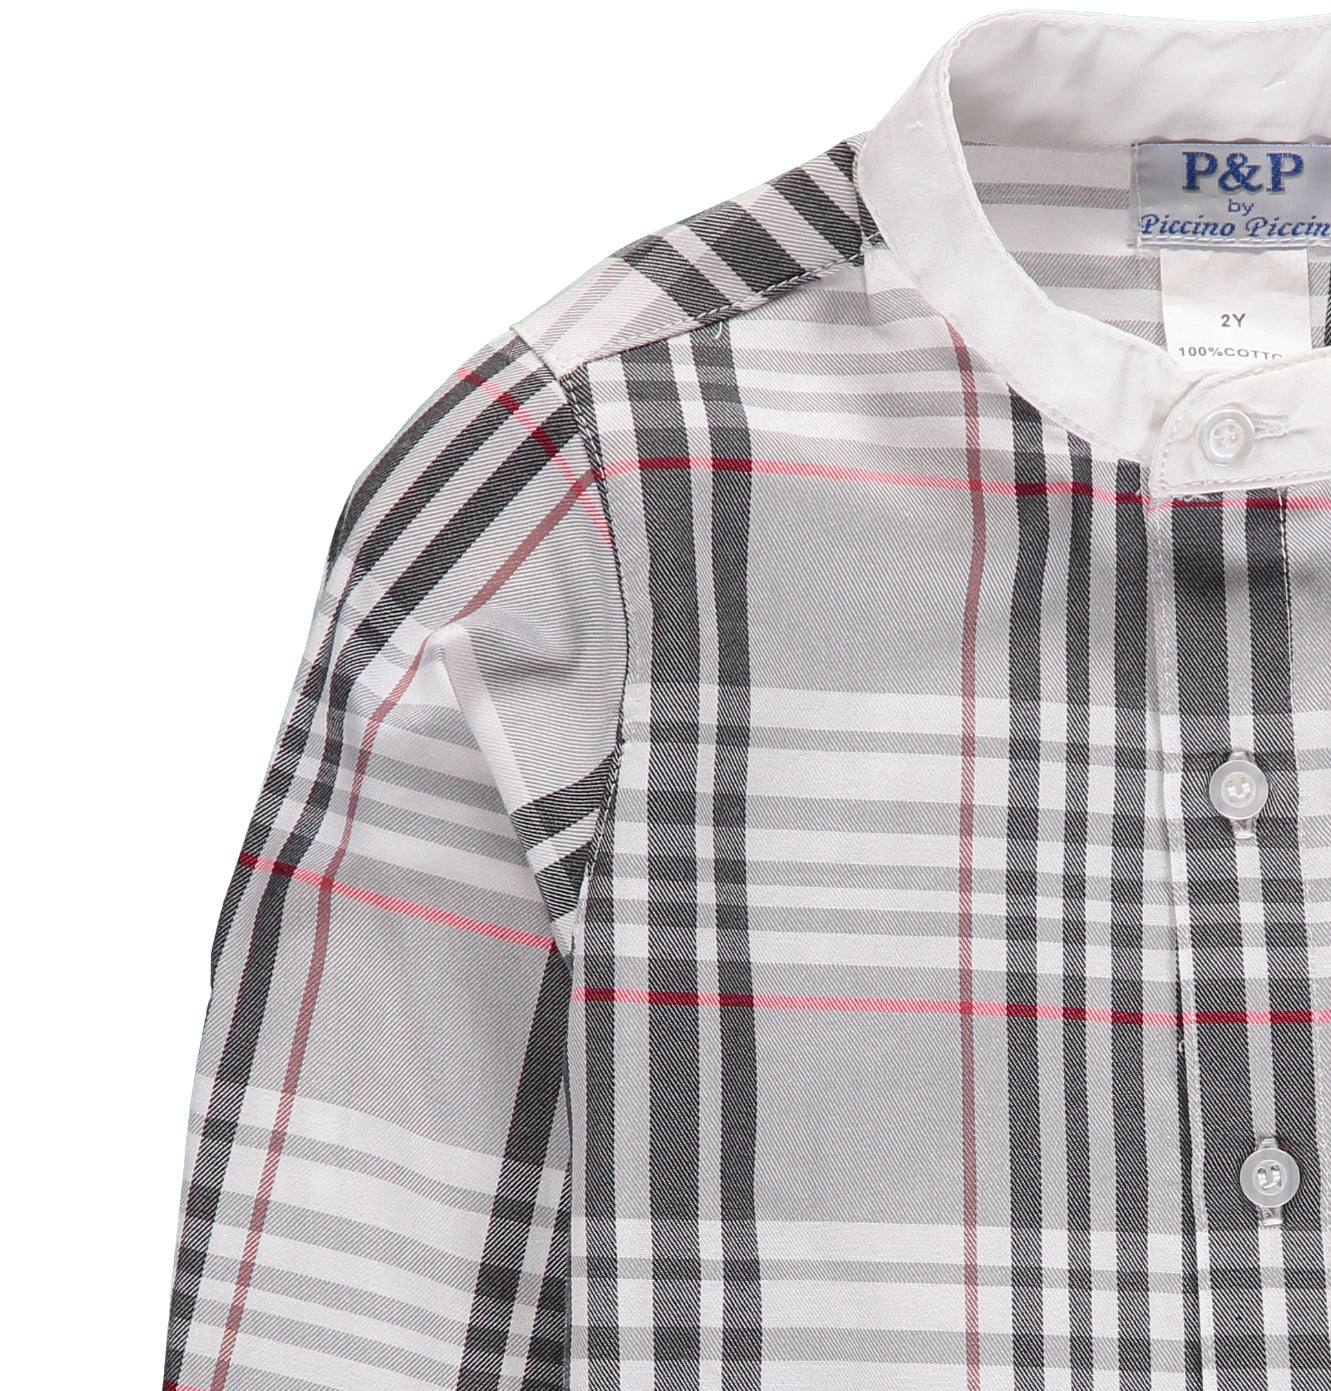 Boys Black & White Plaid Button Up - PiccinoPiccina